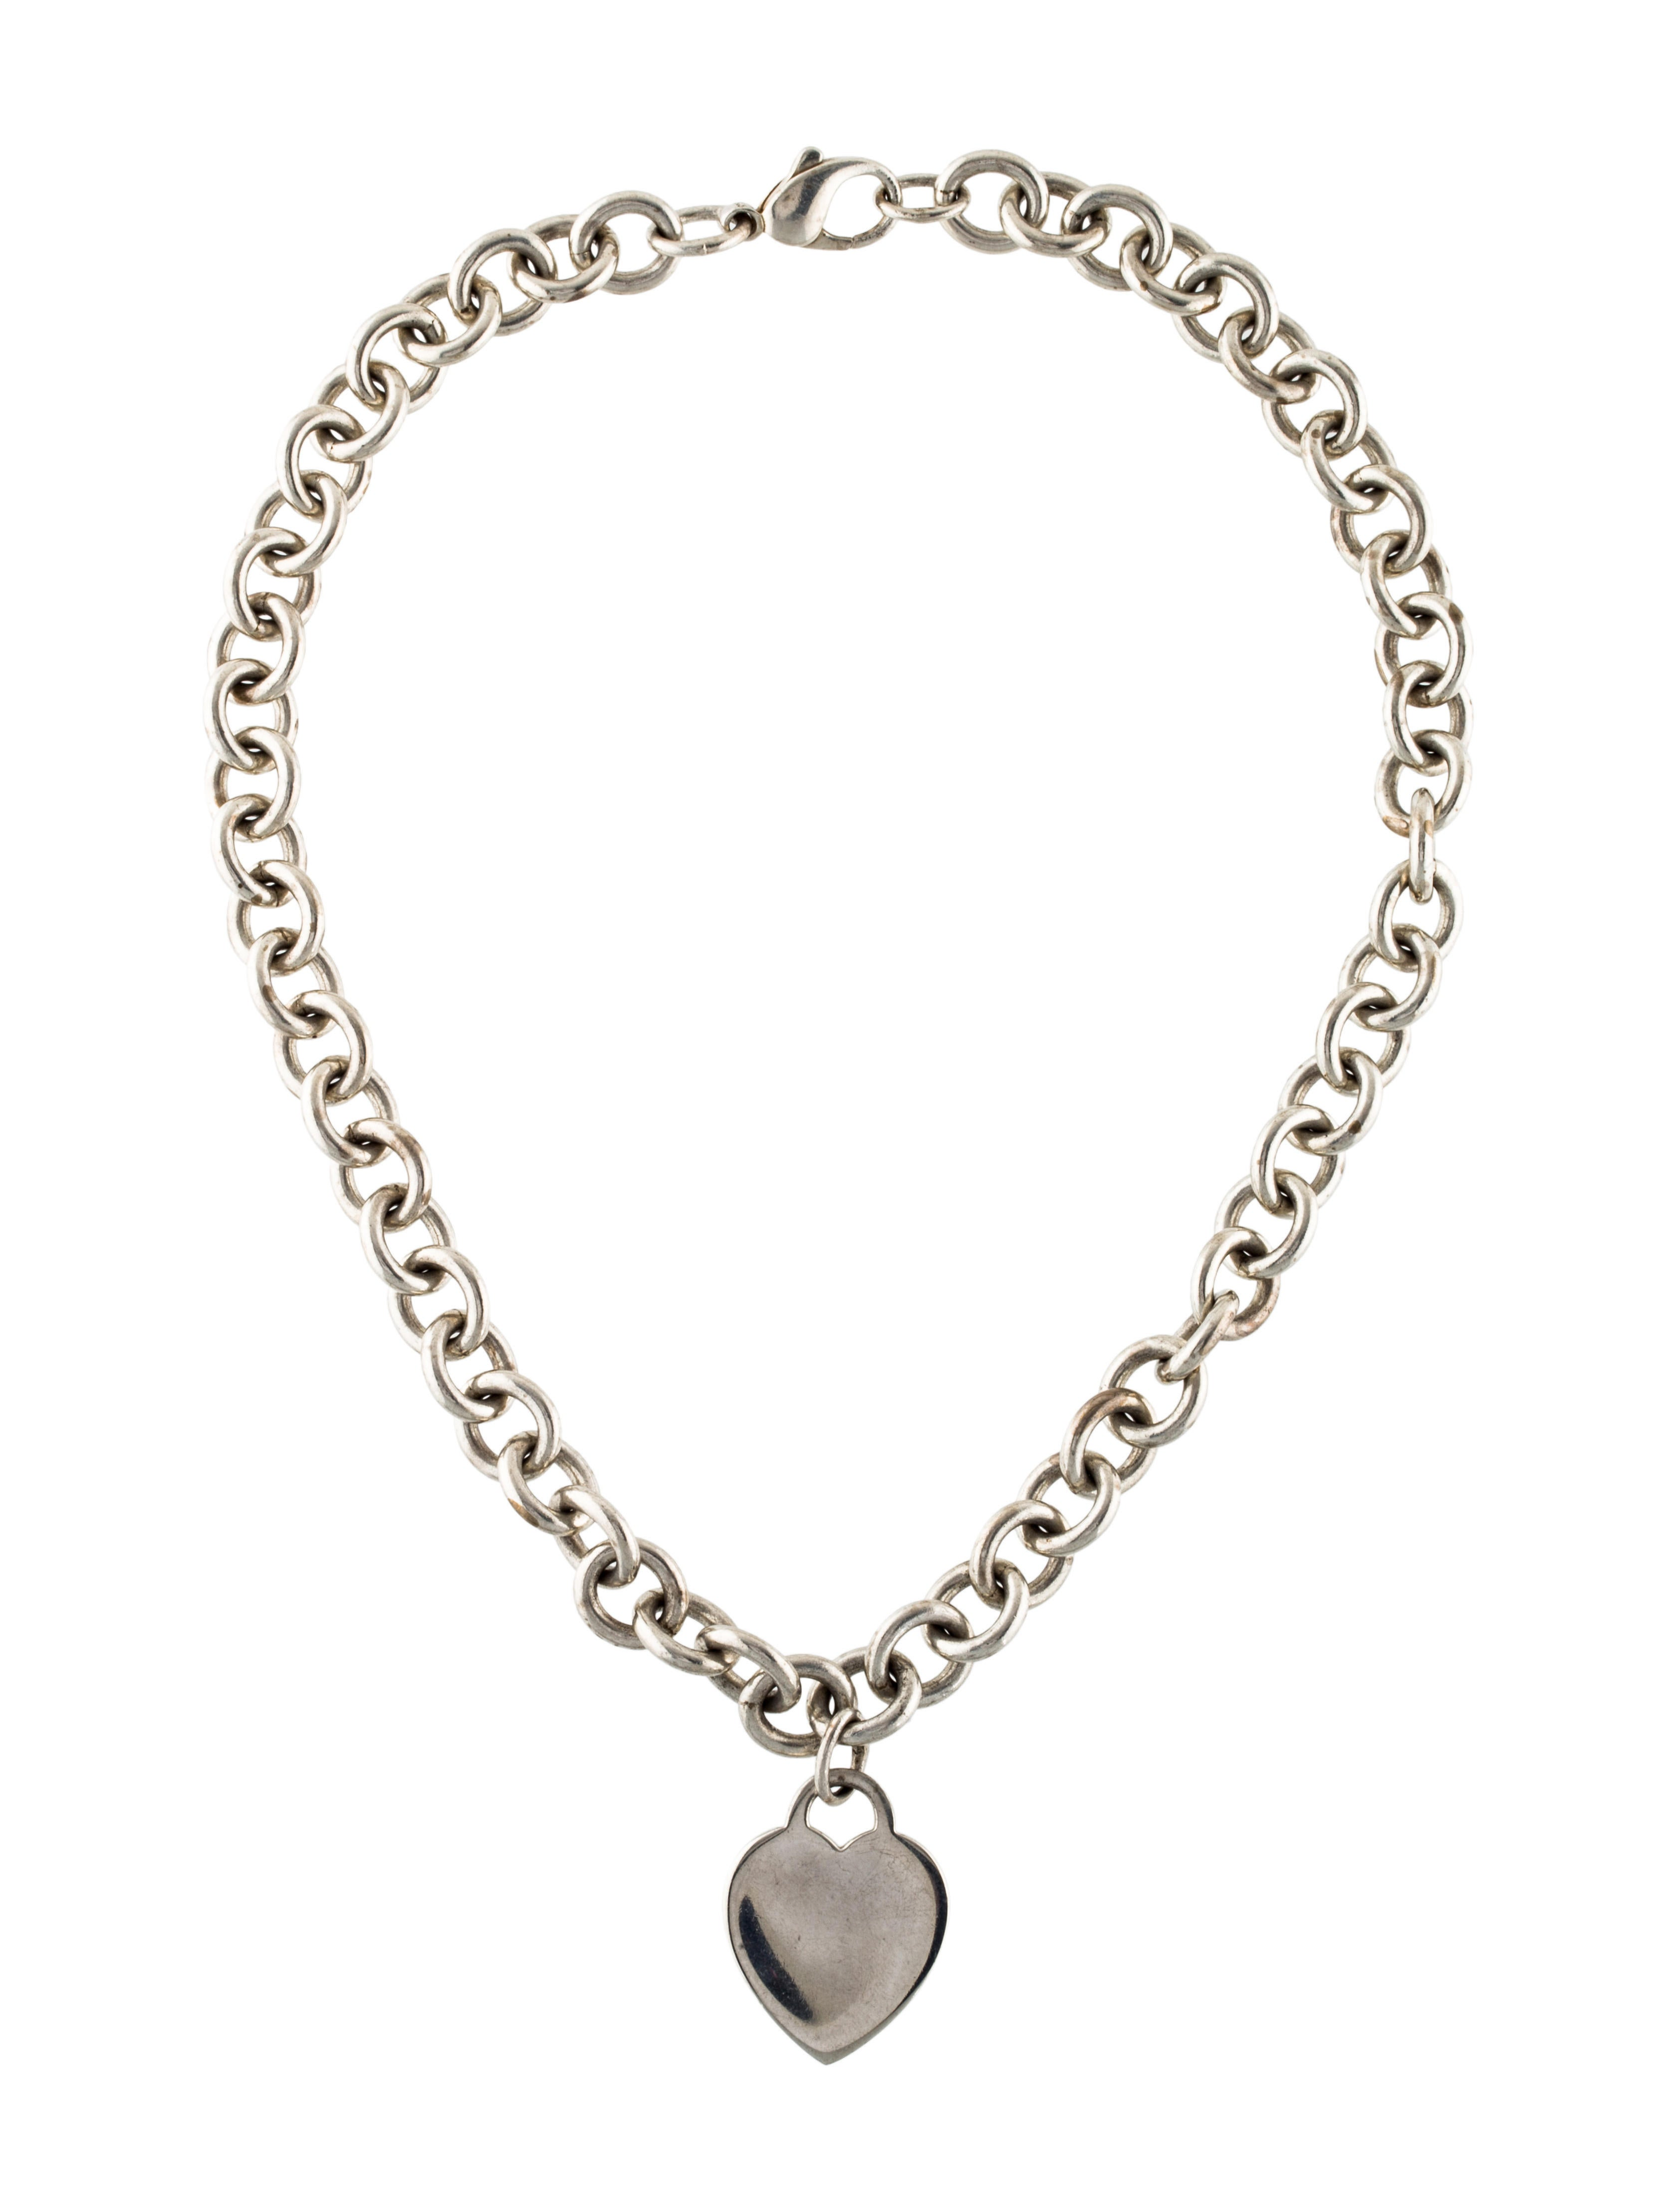 Heart Tag Necklace by Tiffany & Co.